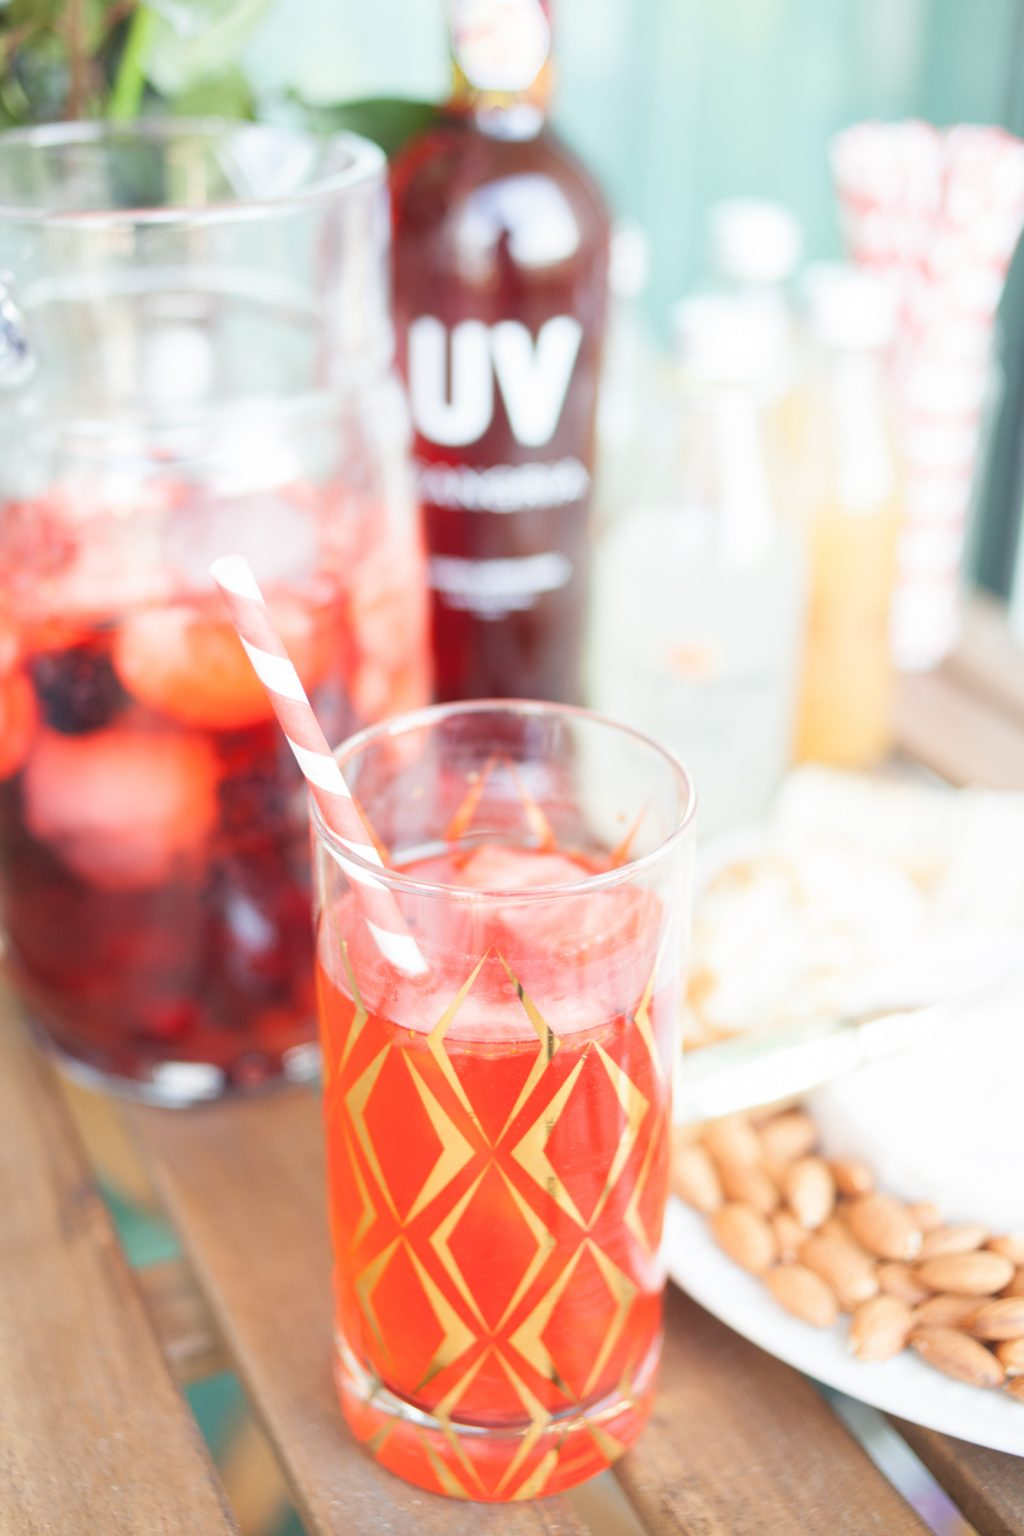 uv sangria vodka, uv vodka, sangria recipe, strawberry lemonade sangria, memorial day celebration, summer soiree party